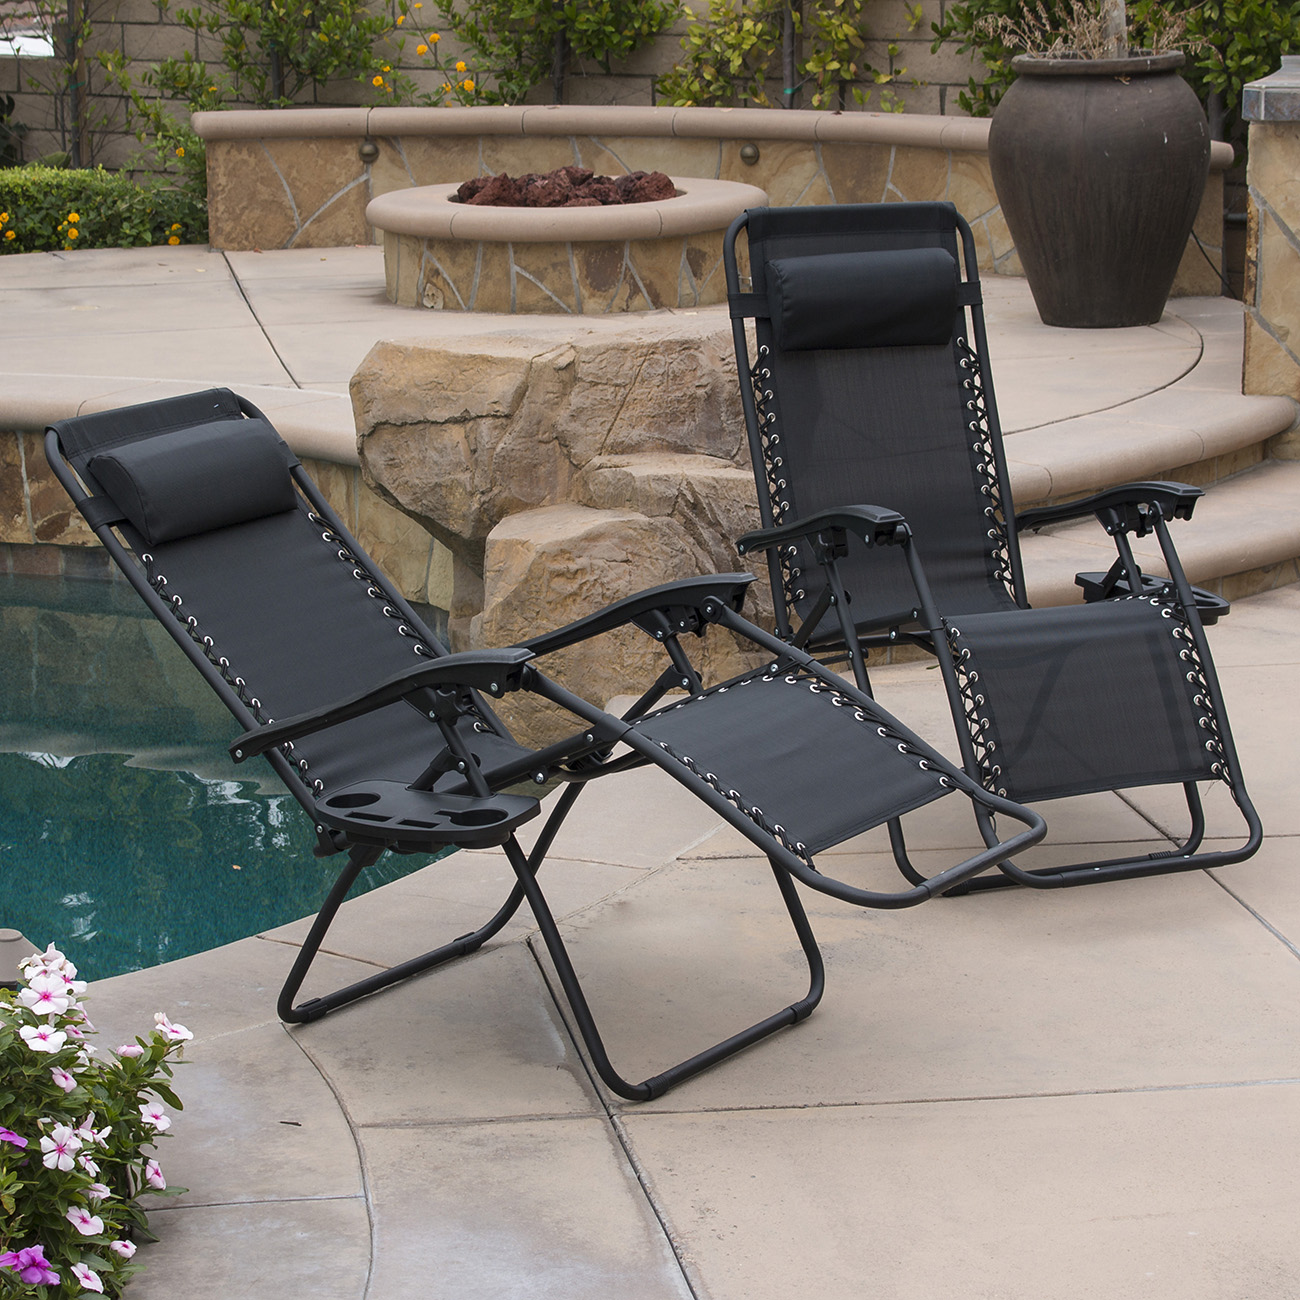 zero gravity lounge black patio chairs device slot cup holder utility tray home - Patio Lounge Chairs